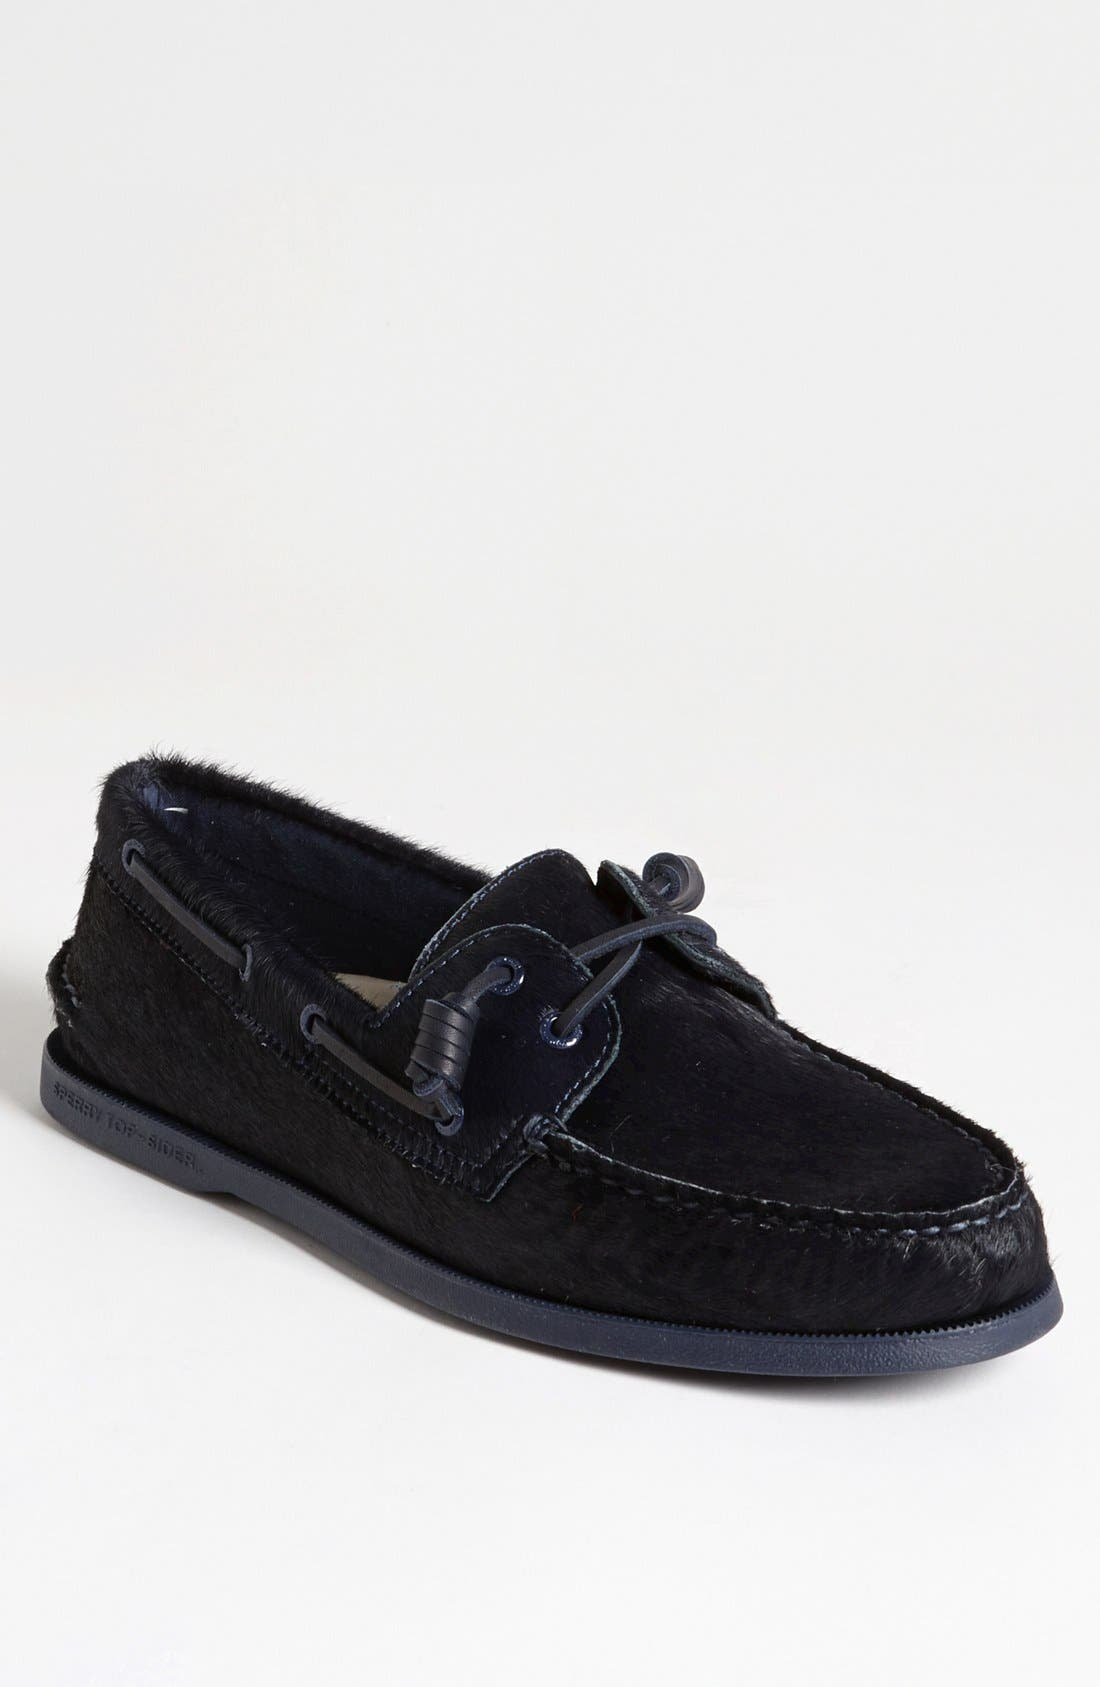 Alternate Image 1 Selected - Sperry Top-Sider® for Jeffrey 'Authentic Original' Calf Hair Boat Shoe